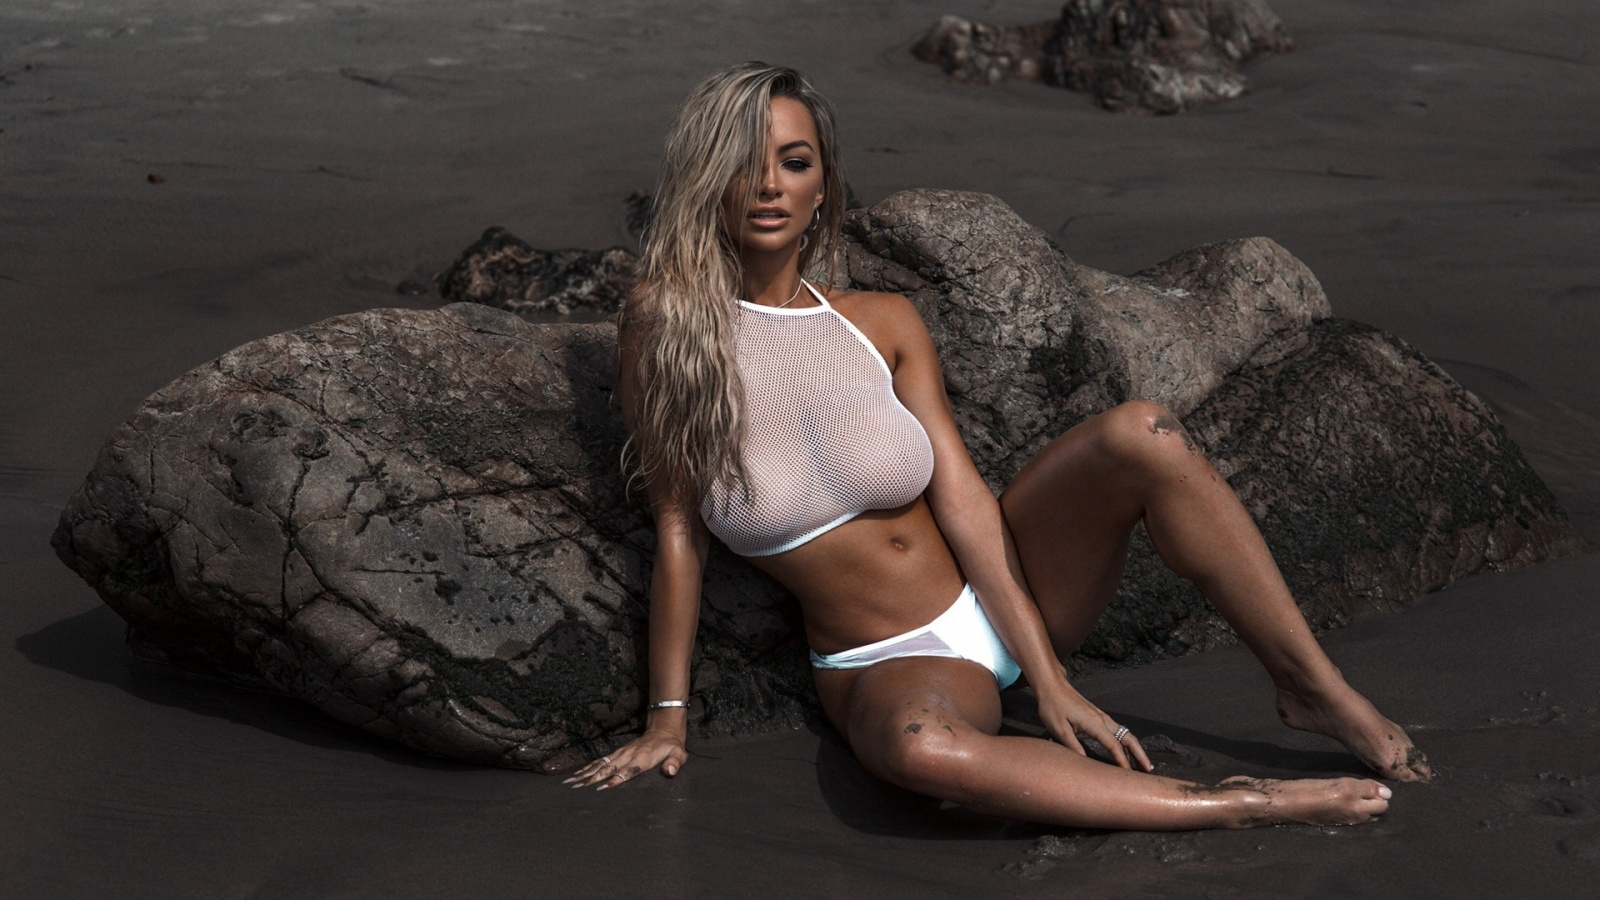 Lindsey Pelas busty blonde playmate on the beach in a hot ...